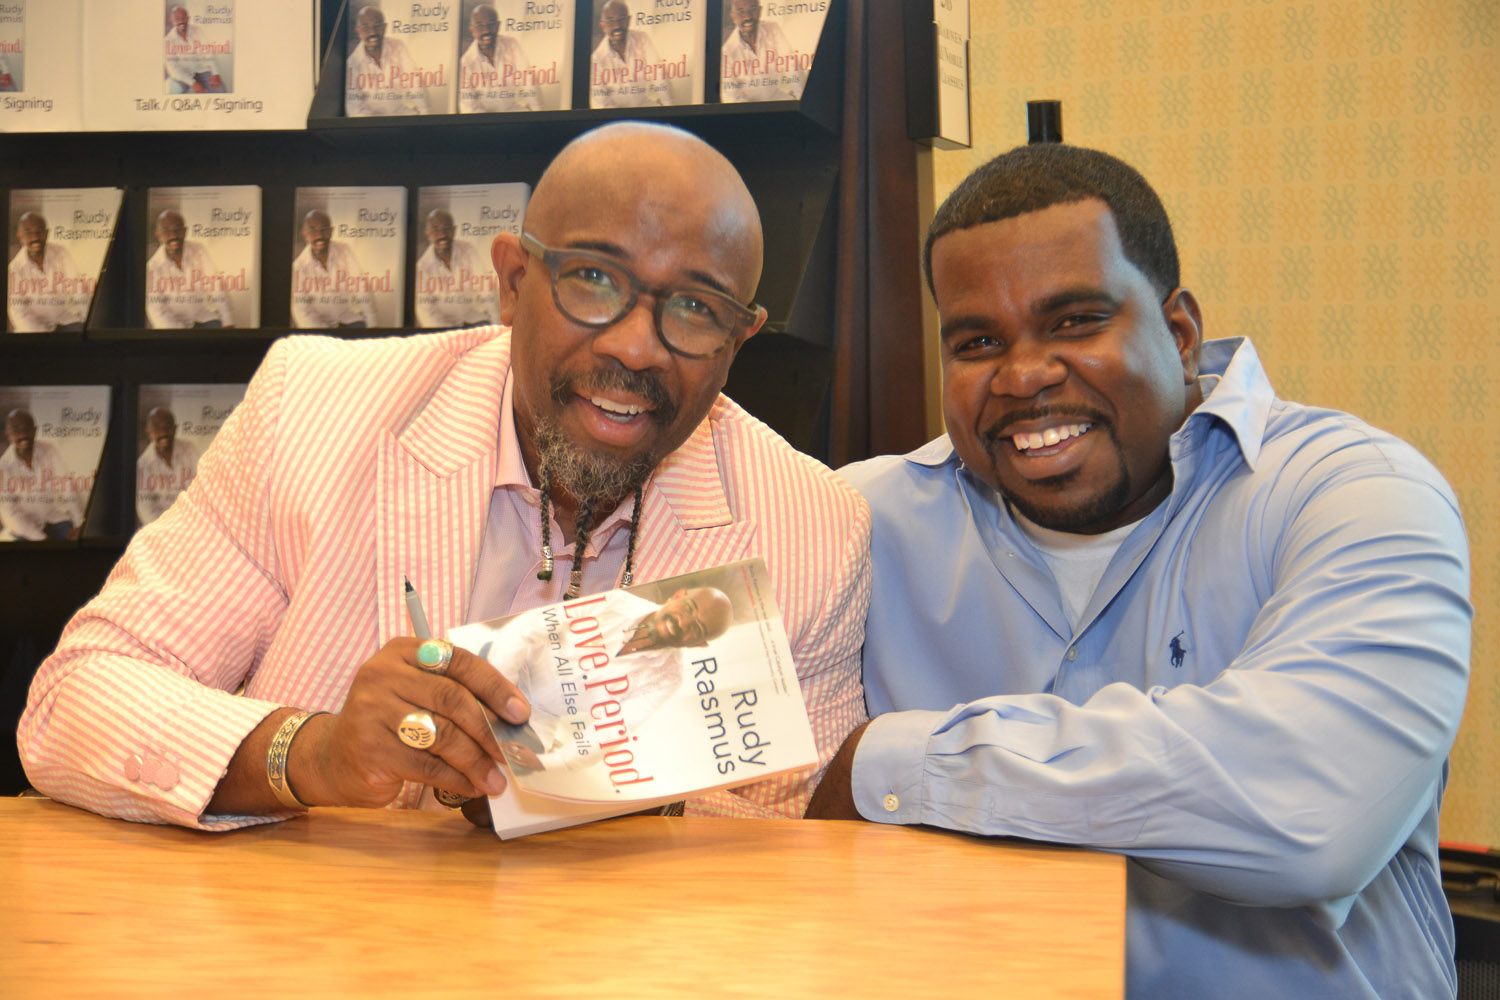 Paster Rudy book signing -0332.jpg